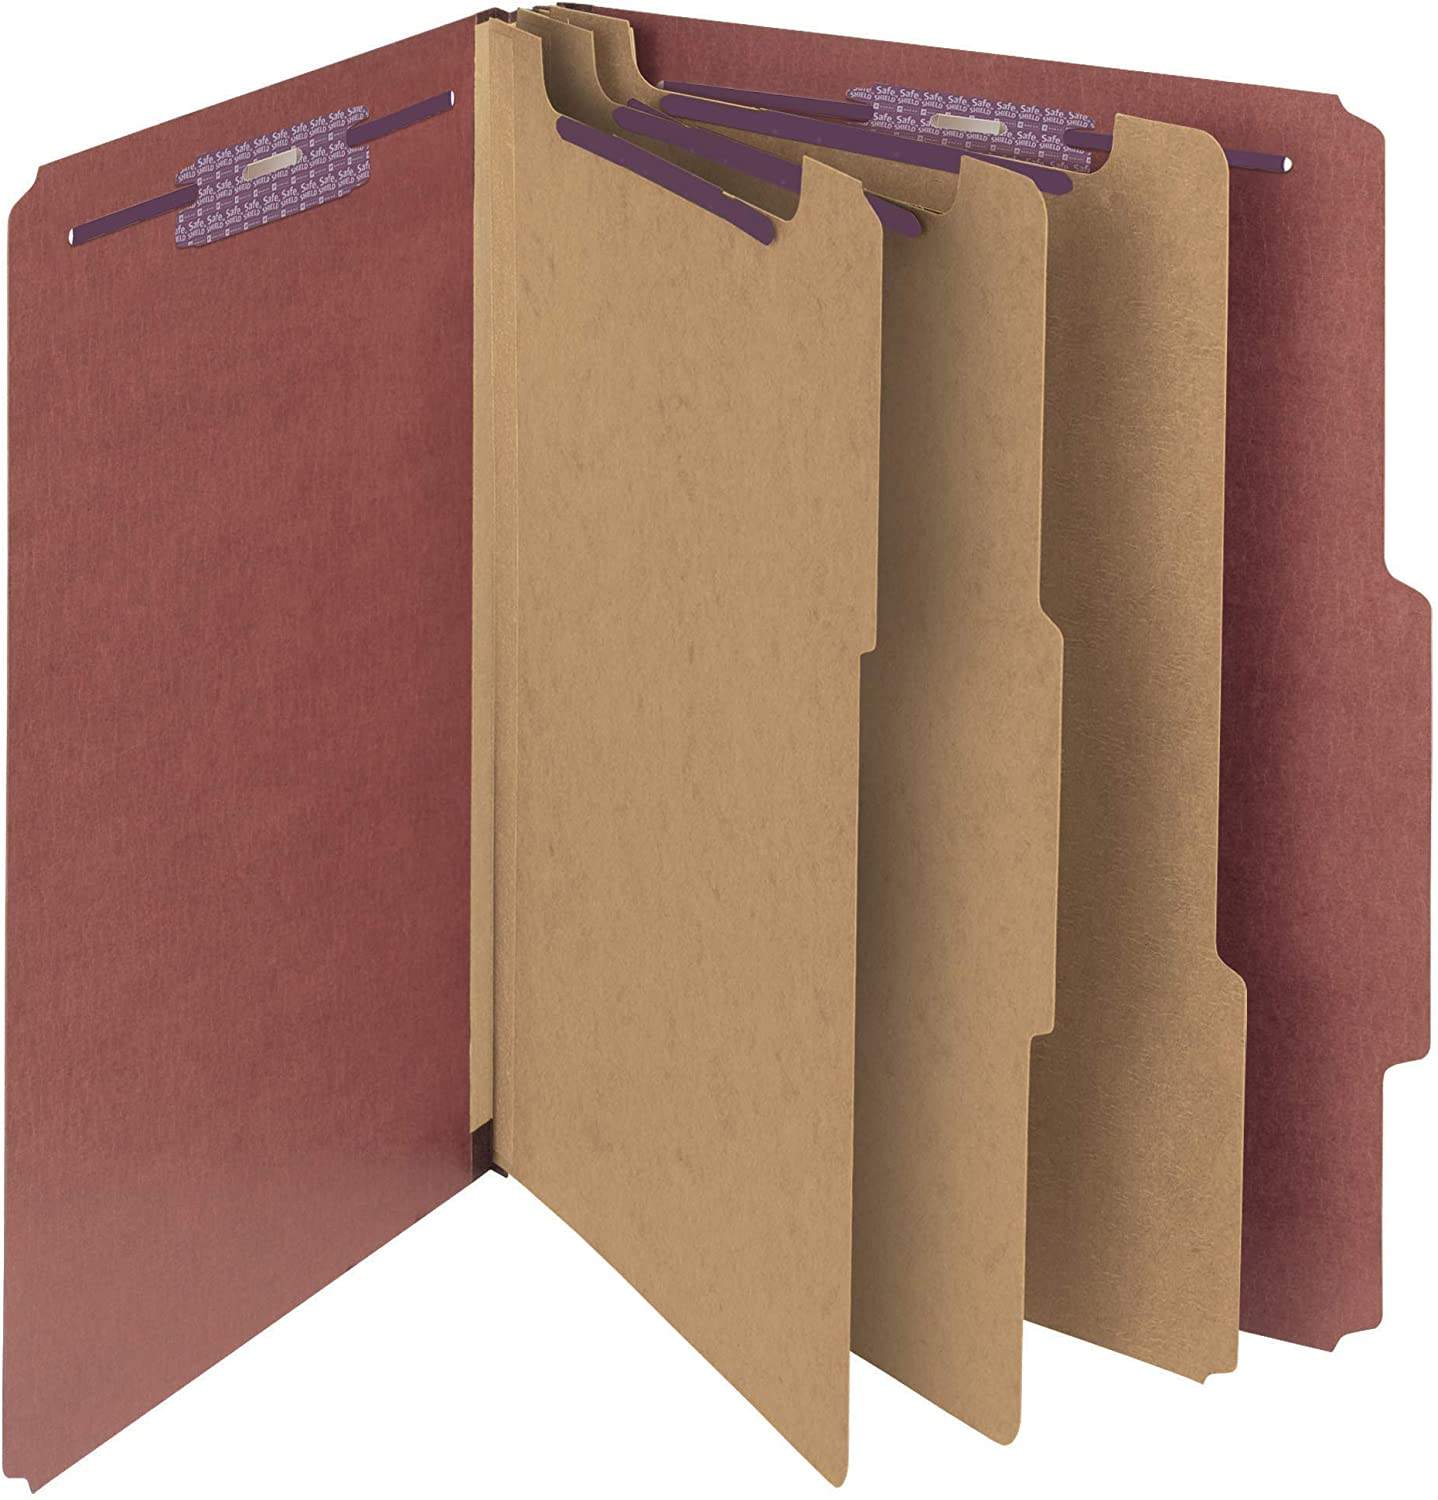 "Smead Pressboard Classification File Folder with SafeSHIELD Fasteners, 3 Dividers, 3"" Expansion, Letter Size, Red, 10 per Box (14092)"